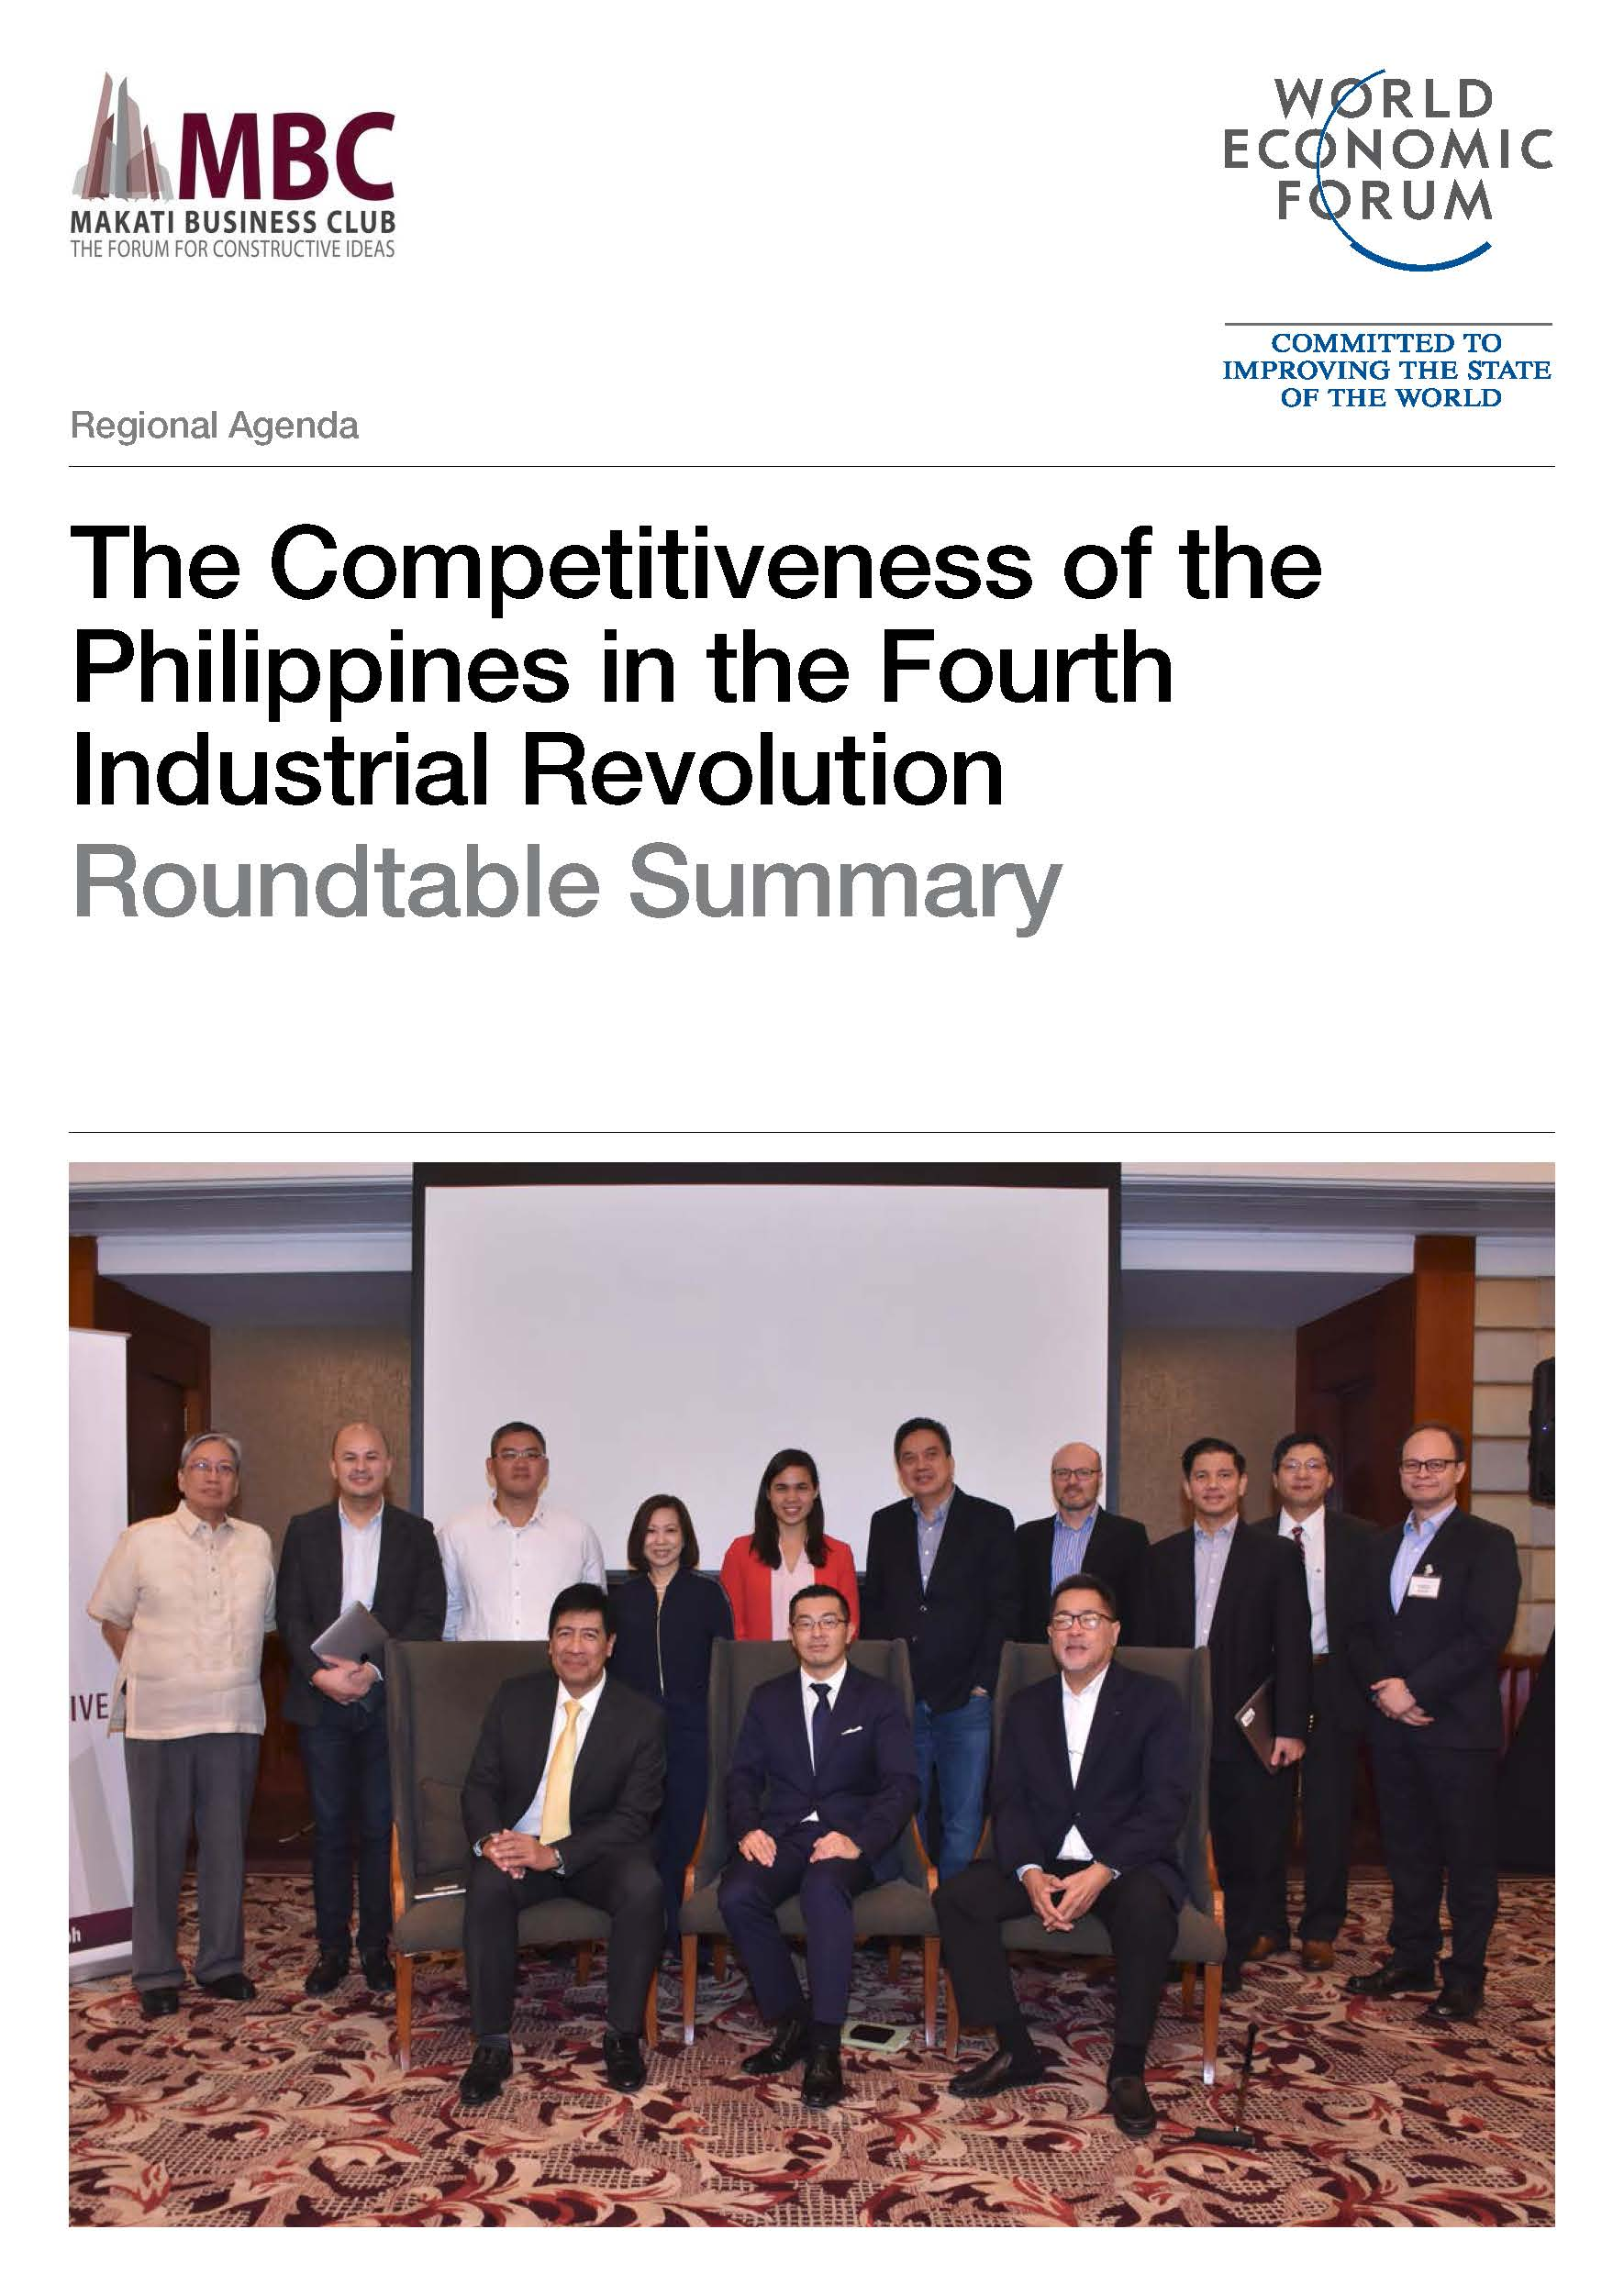 The Competitiveness of the Philippines in the Fourth Industrial Revolution Roundtable Summary